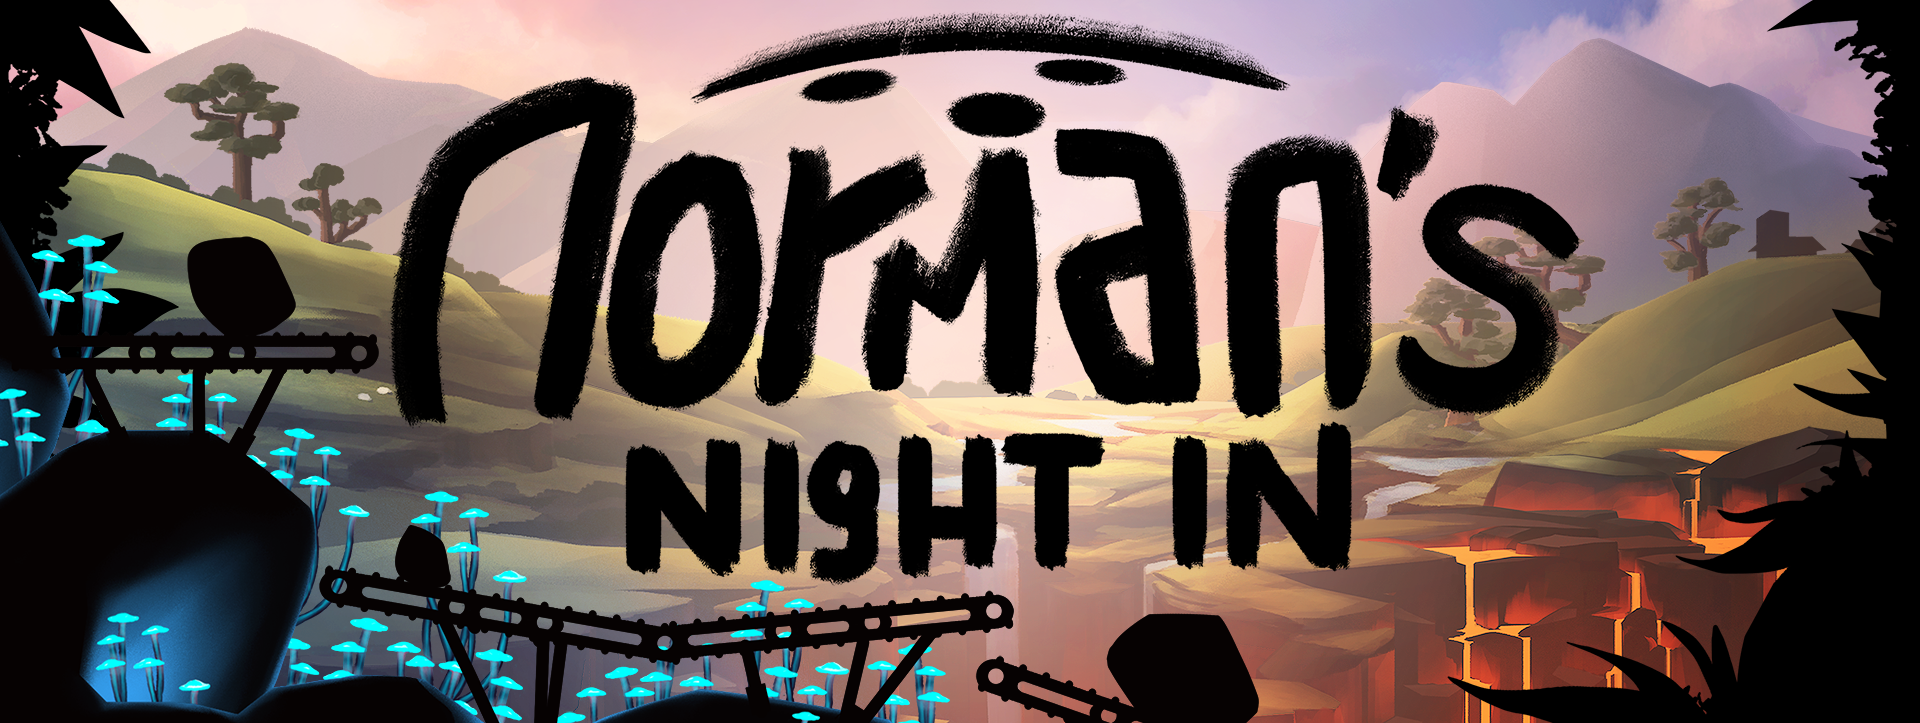 NormansNightIn02.png